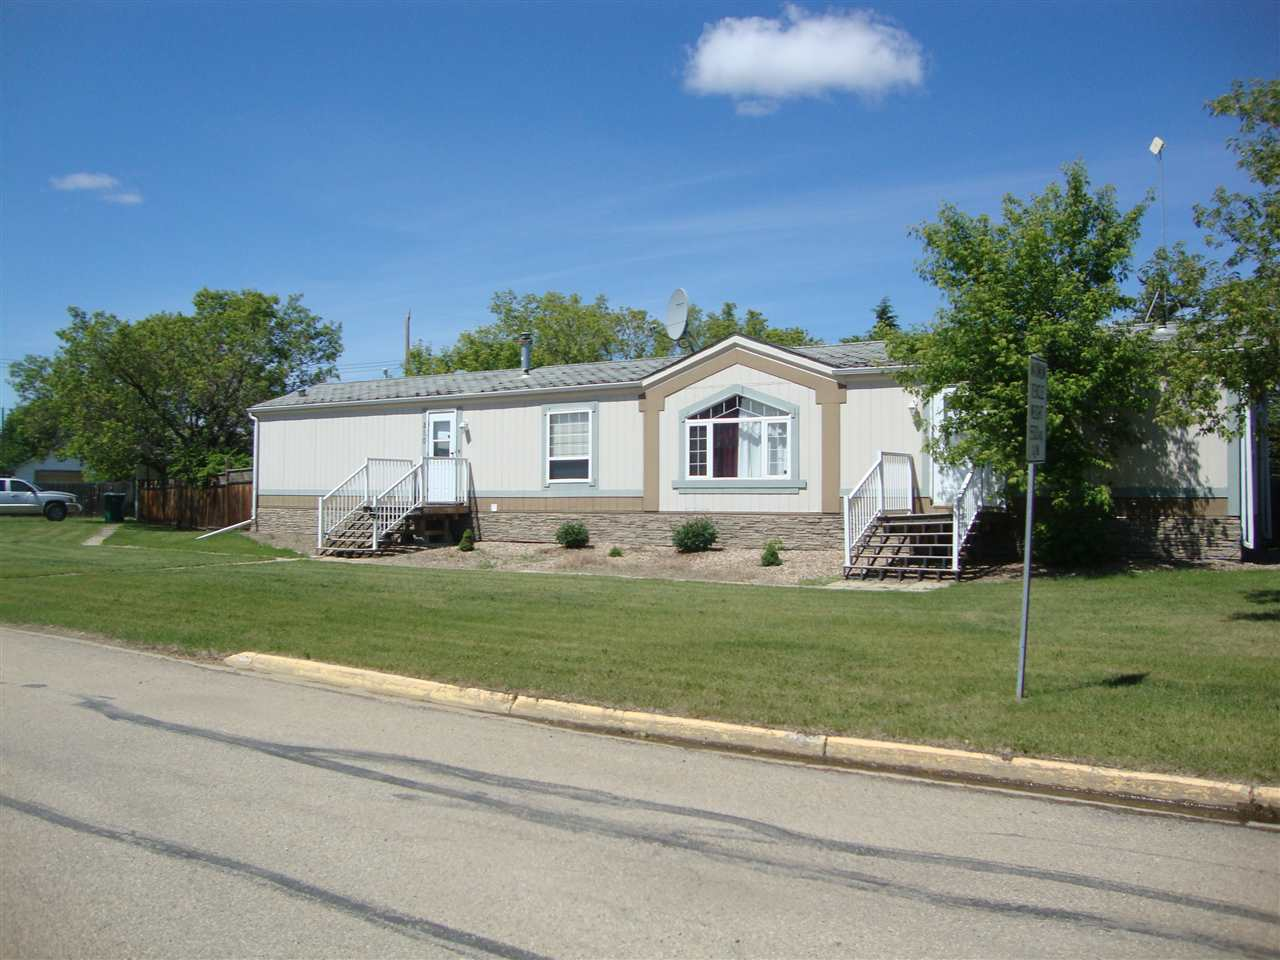 Very nice 1996 Winalta home with almost 1200 sq ft of living space, on HUGE fenced 99 x 220ft lot!! Double detached 24 x 24 insulated garage. Dog run. Storage shed.  Home is beautifully maintained and has CENTRAL AIR CONDITIONER! Kitchen boasts an abundance of modern white cabinets, lots of counter space and opens to a good sized lvg rm. Mstr bedrm features huge walk-in closet & a full 4pc ensuite. 2 addt'l bedrms & 4pc bath complete this home. The exceptionally big backyard is wonderfully quiet, serene and comfortable with privacy trees along property line and high fencing. Excellent central location within walking distance to all amenities.